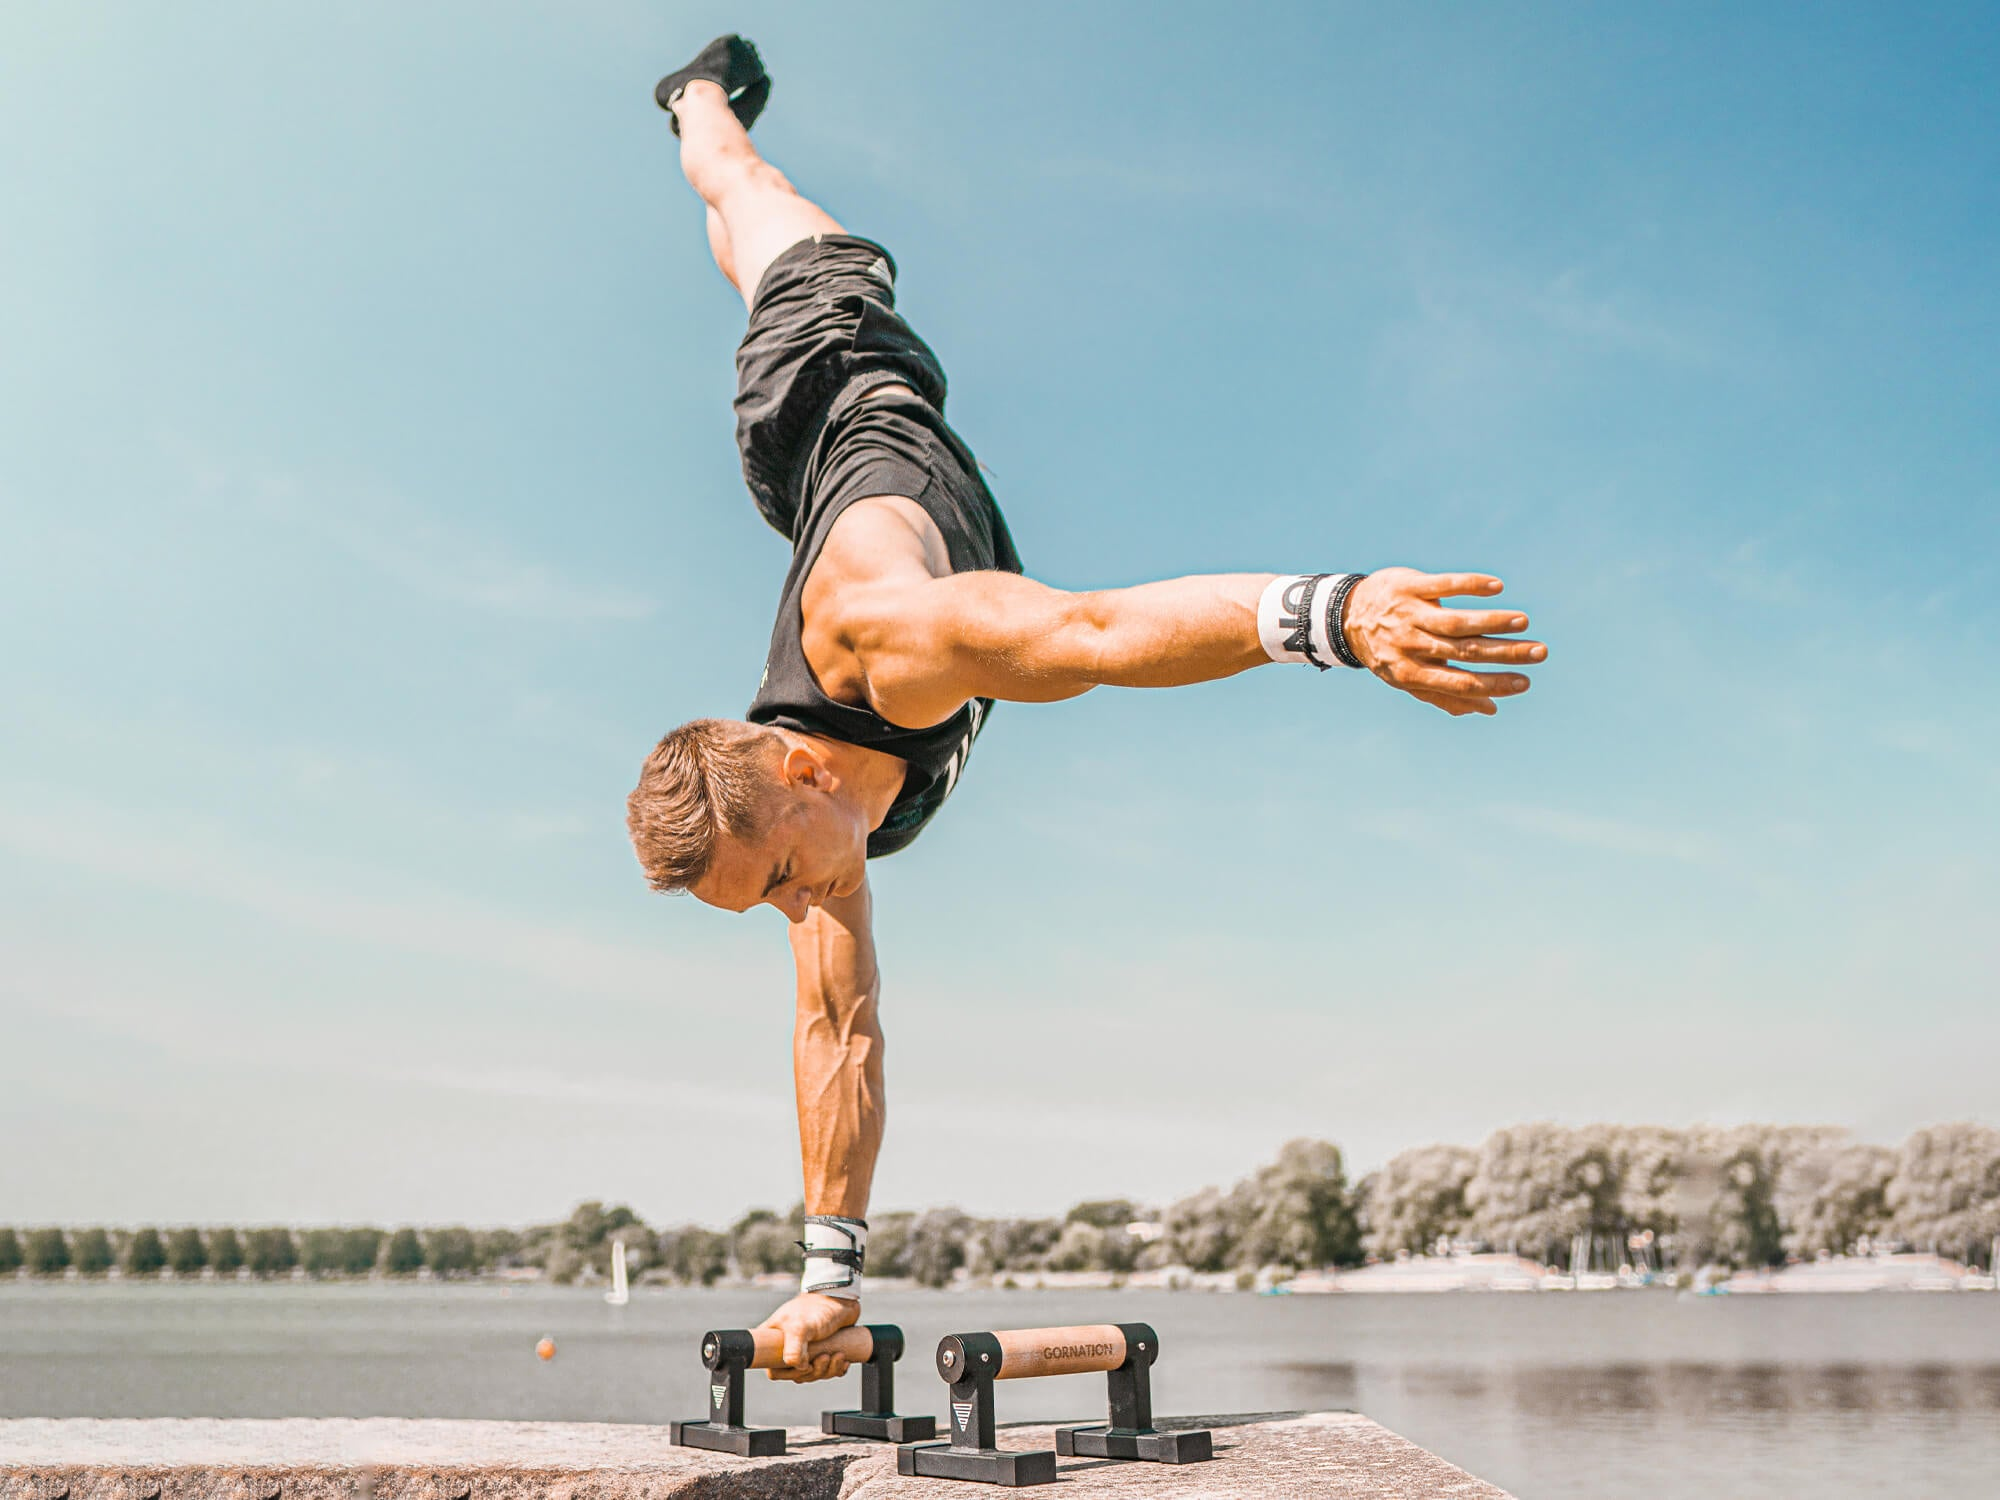 athlete holding a one arm handstand on parallettes